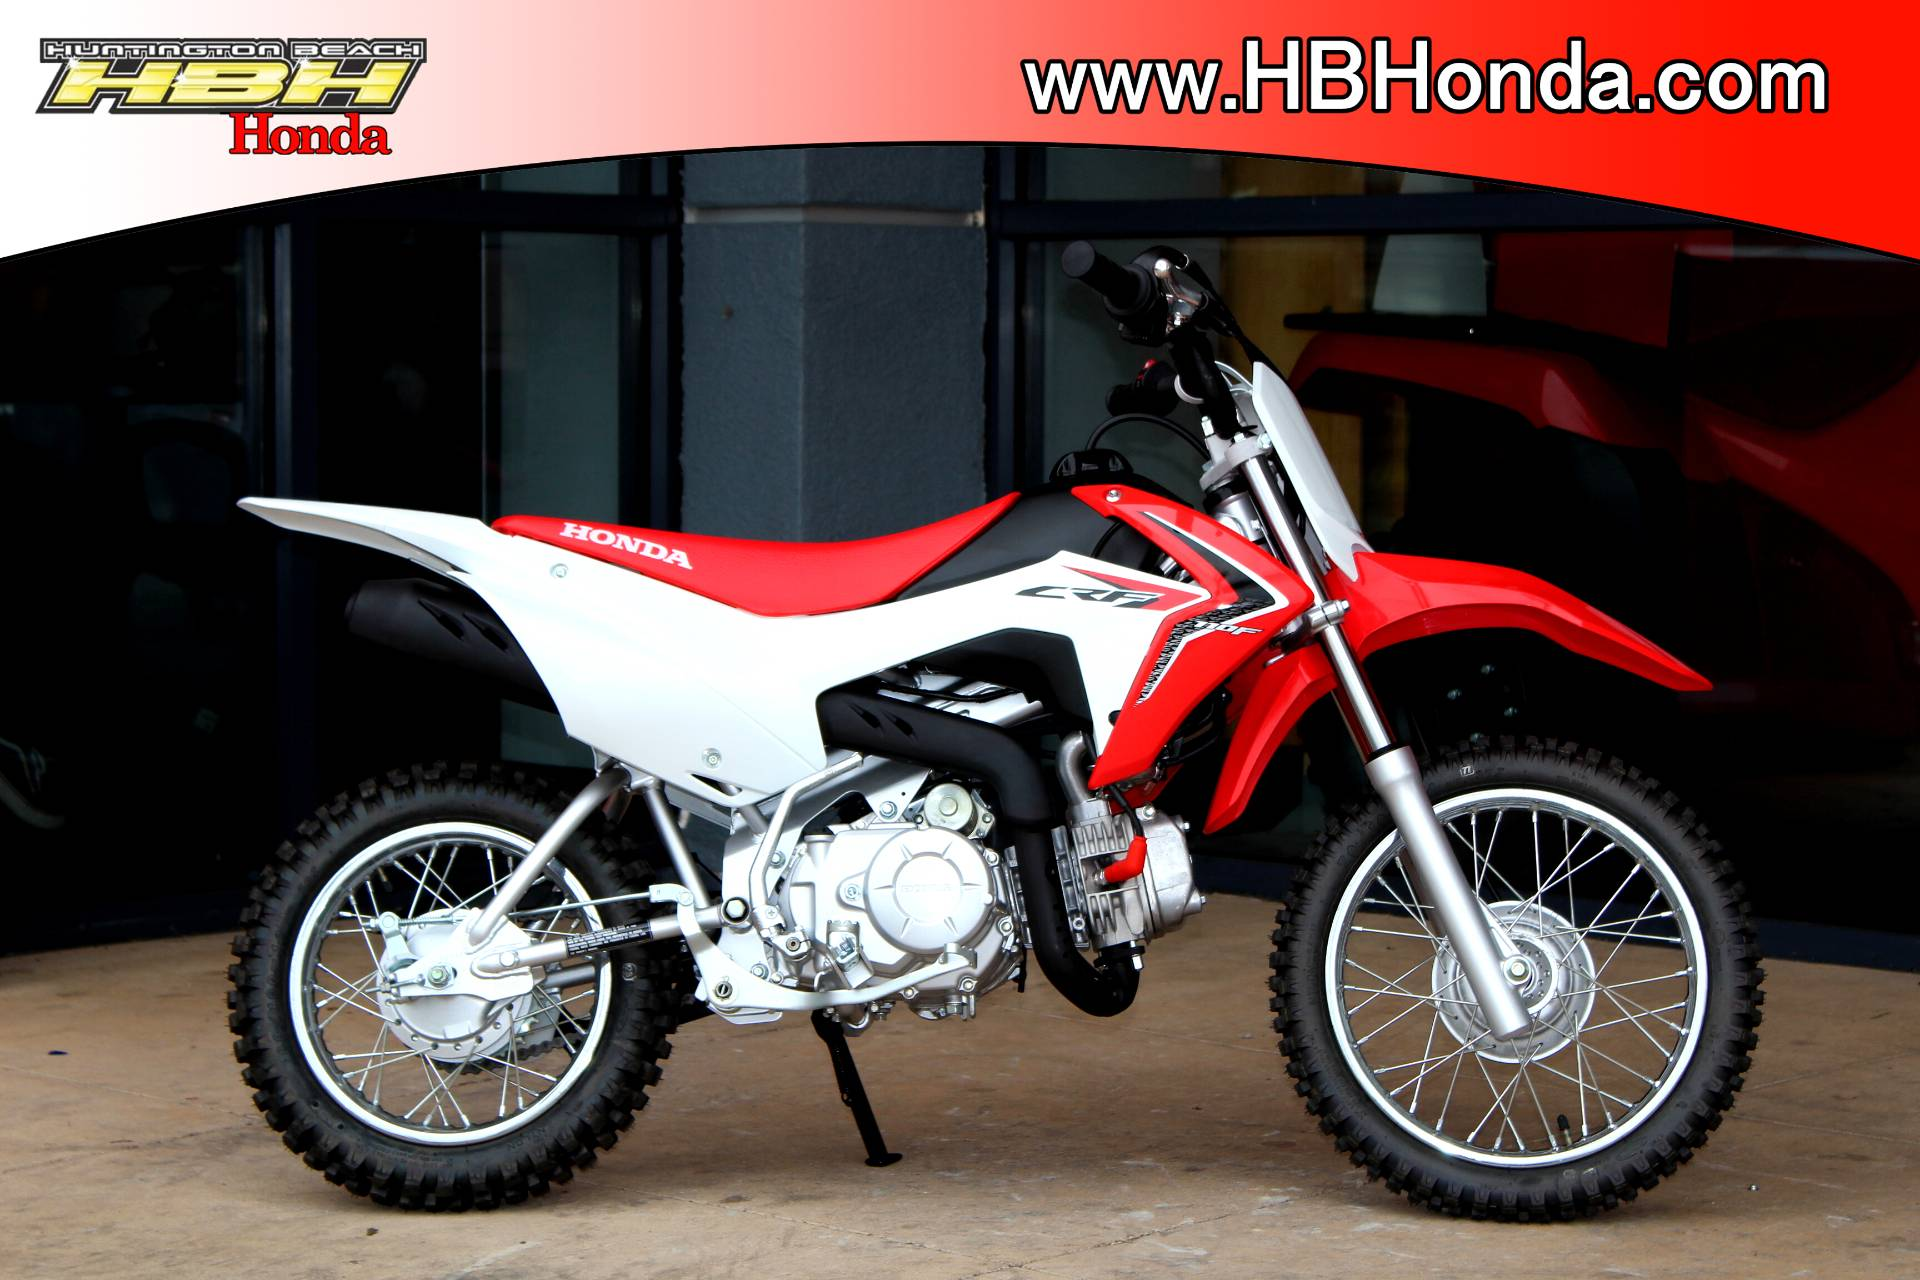 New 2018 Honda Crf110f Motorcycles For Sale In Huntington